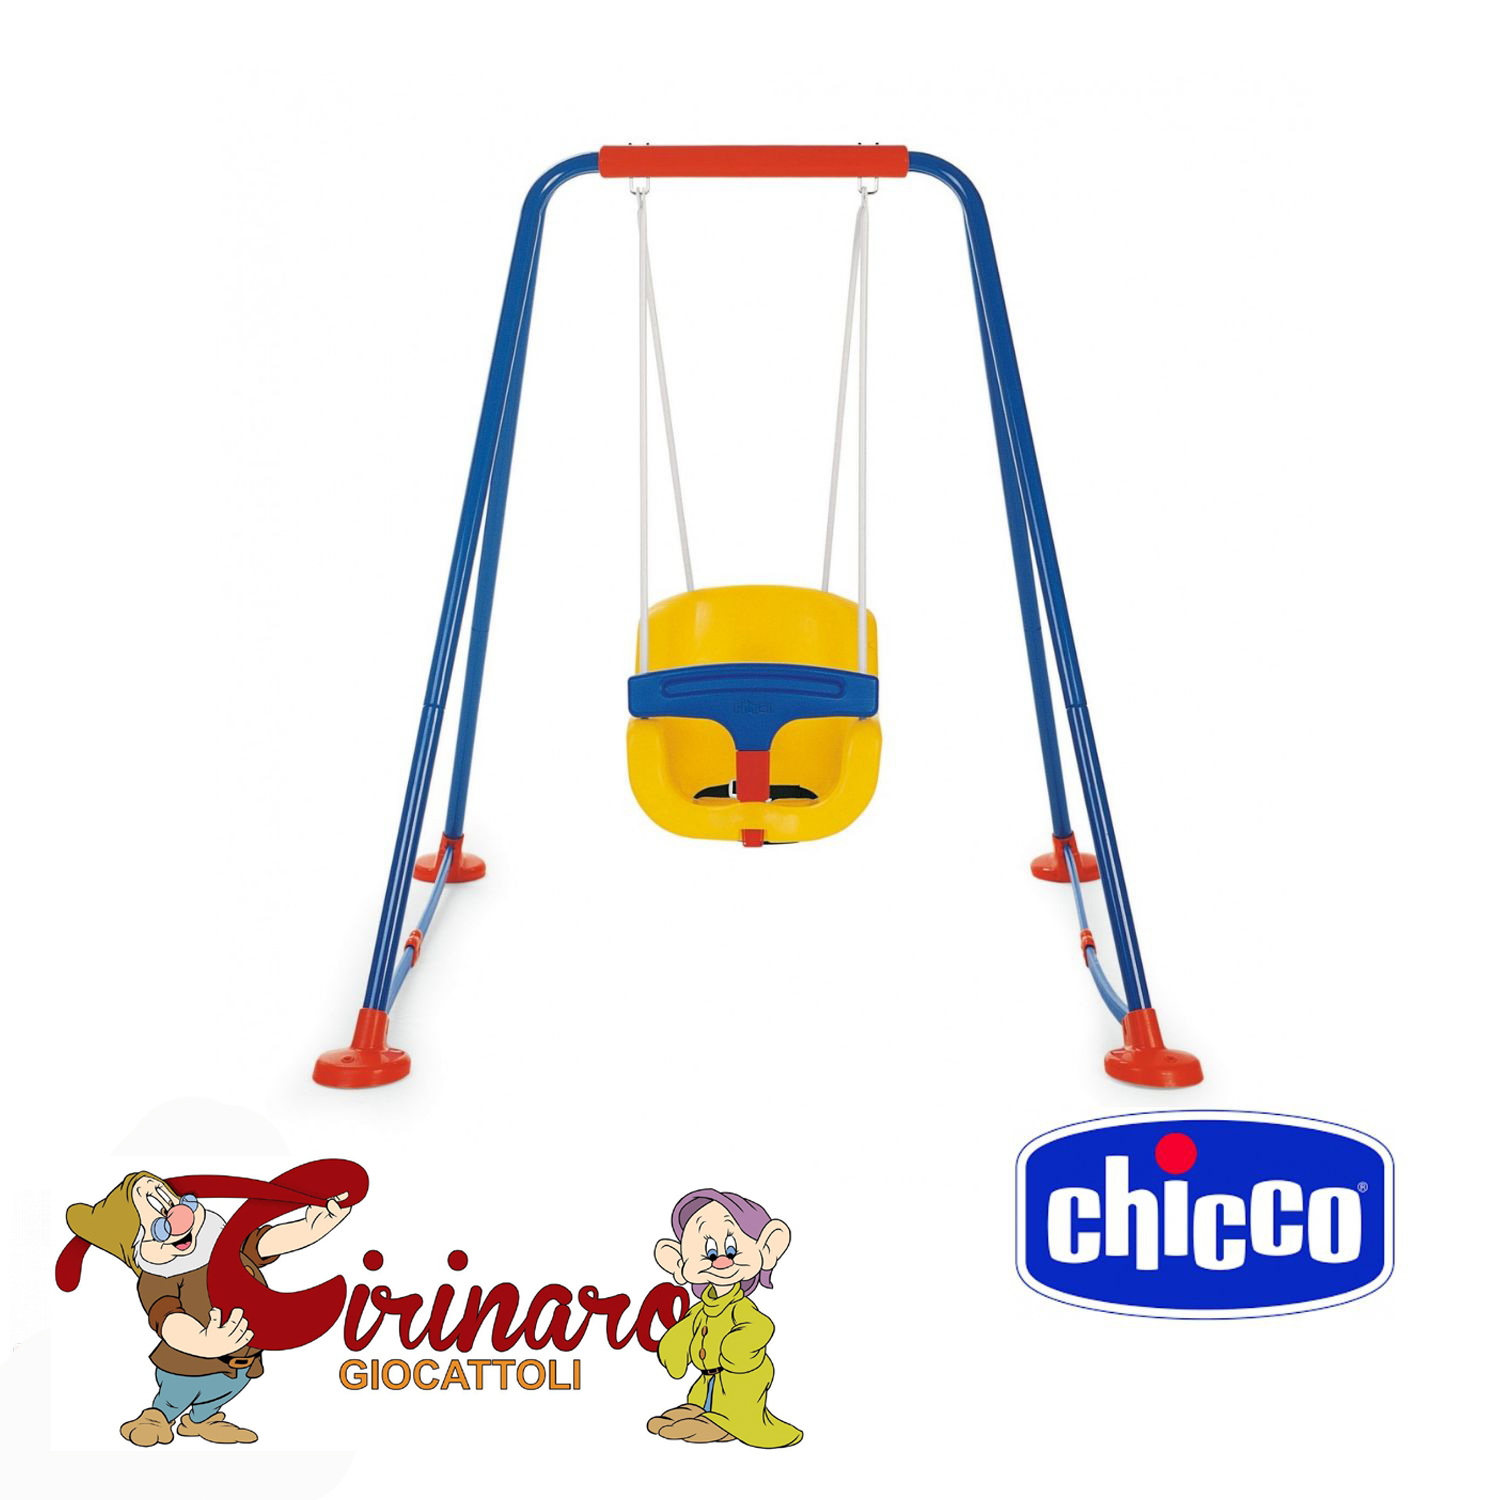 Chicco altalena super swing cirinaroshopcirinaroshop for Altalena chicco amazon